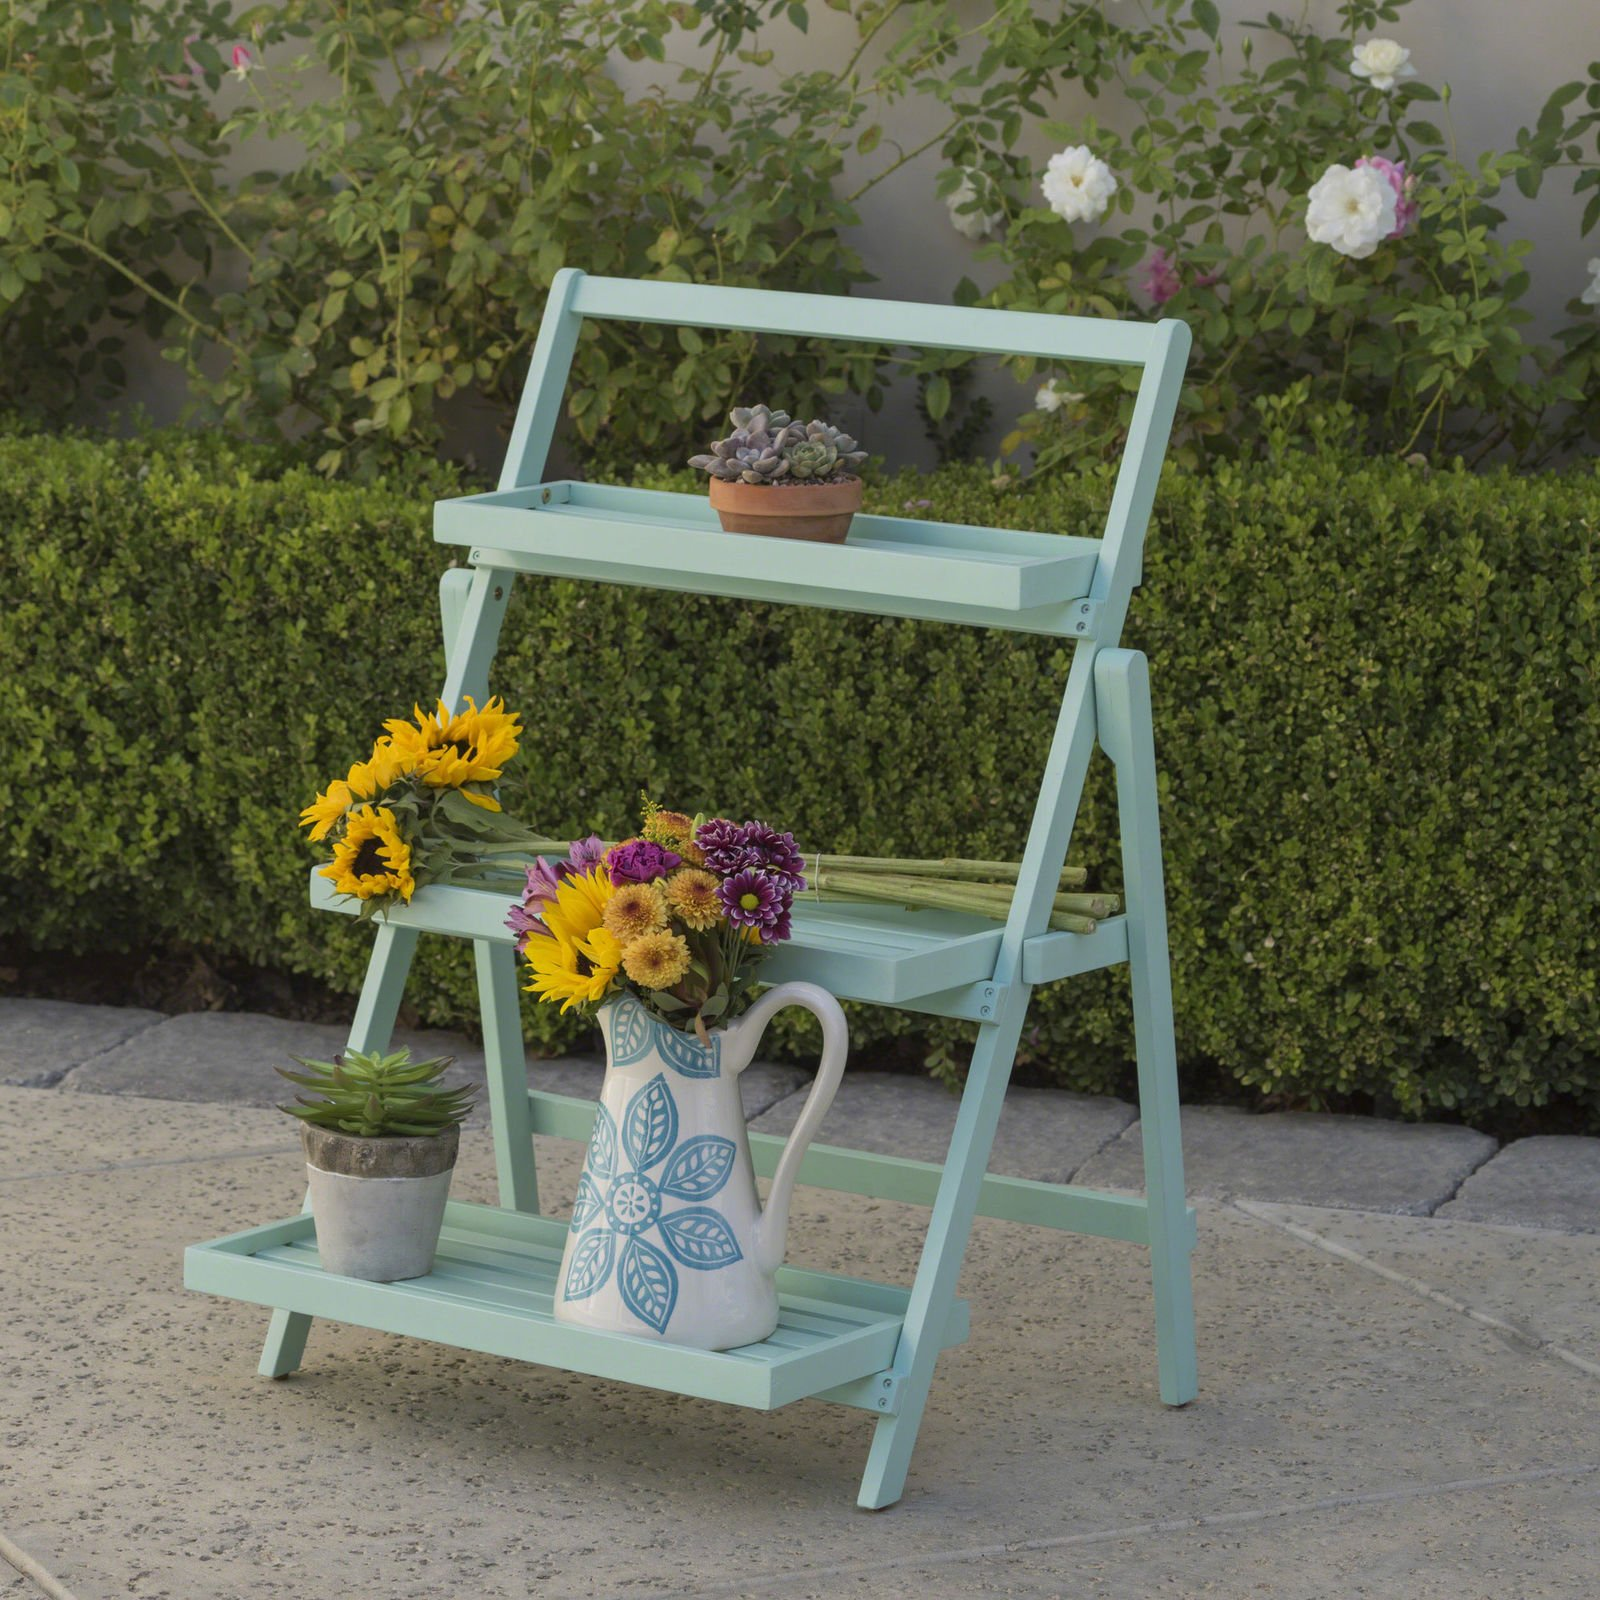 Charlton Home 35'' Goreville Modern Outdoor Multi-Tiered Plant Stand (Light Mint) by Charlton Home